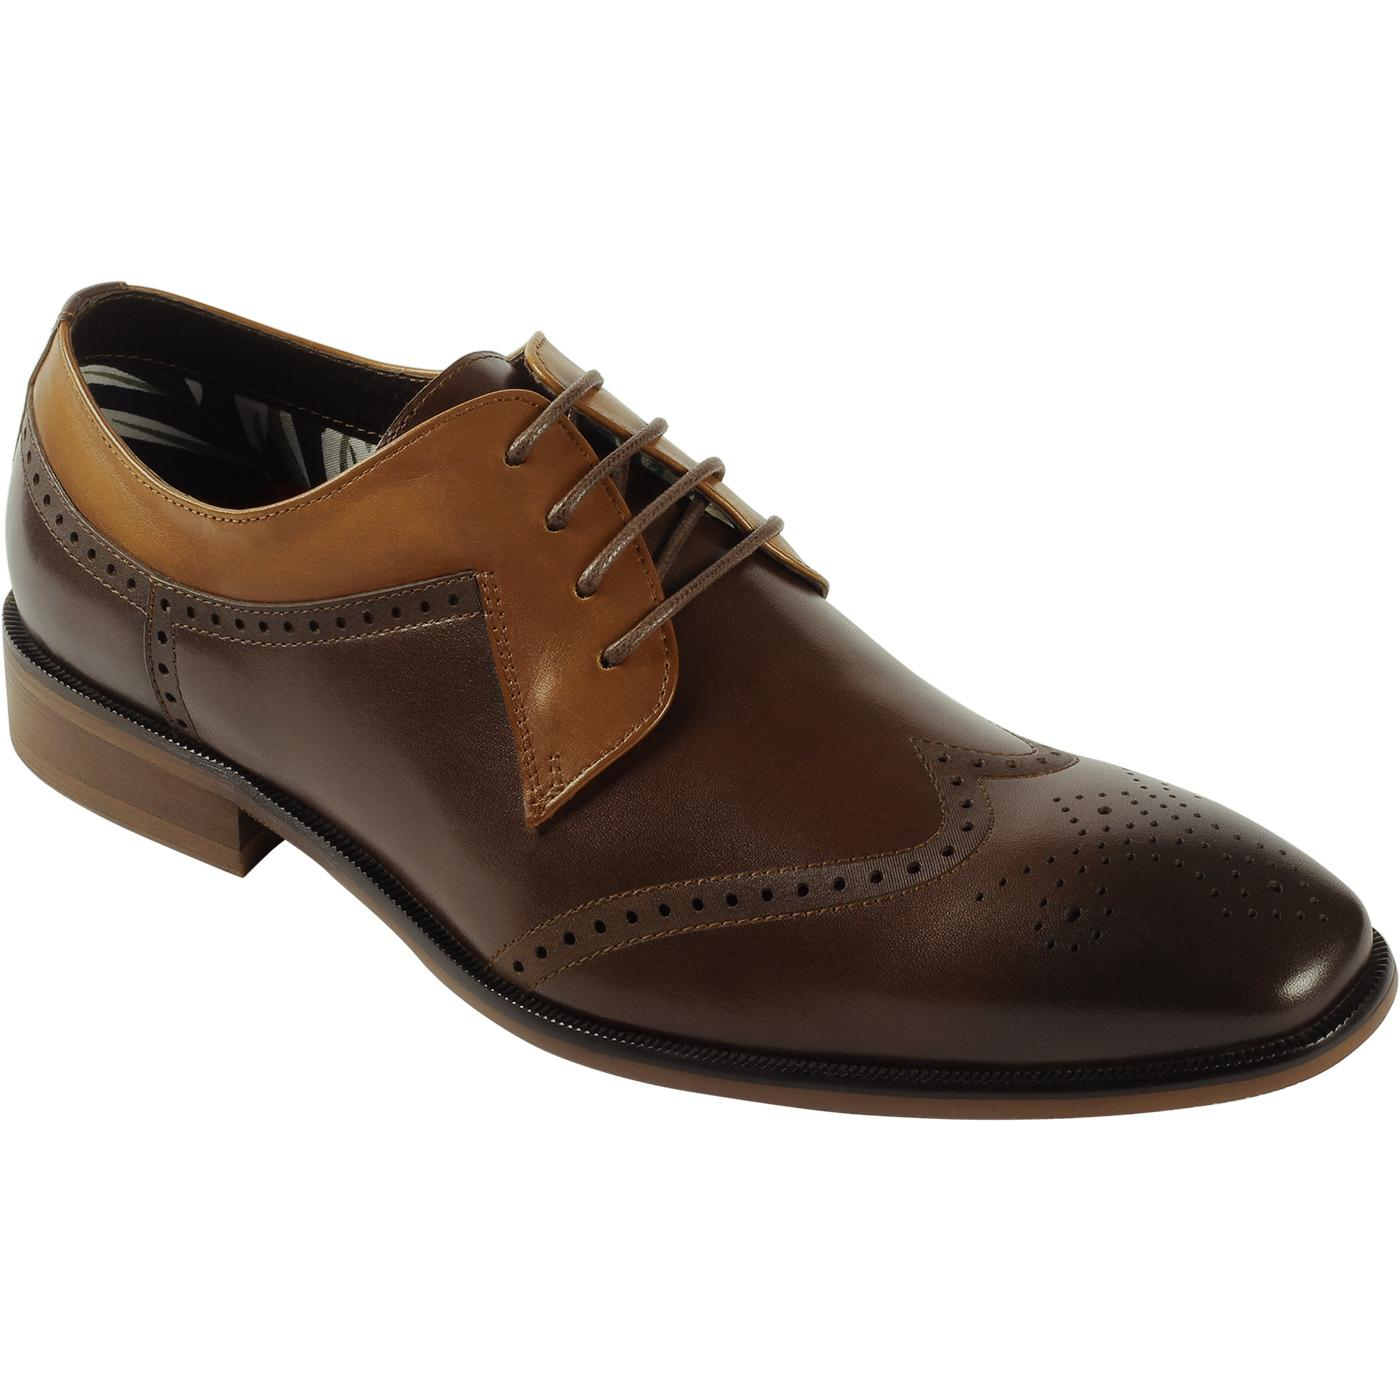 Nyland Cuff PAOLO VANDINI Tri-Colour Brogues (B/T)